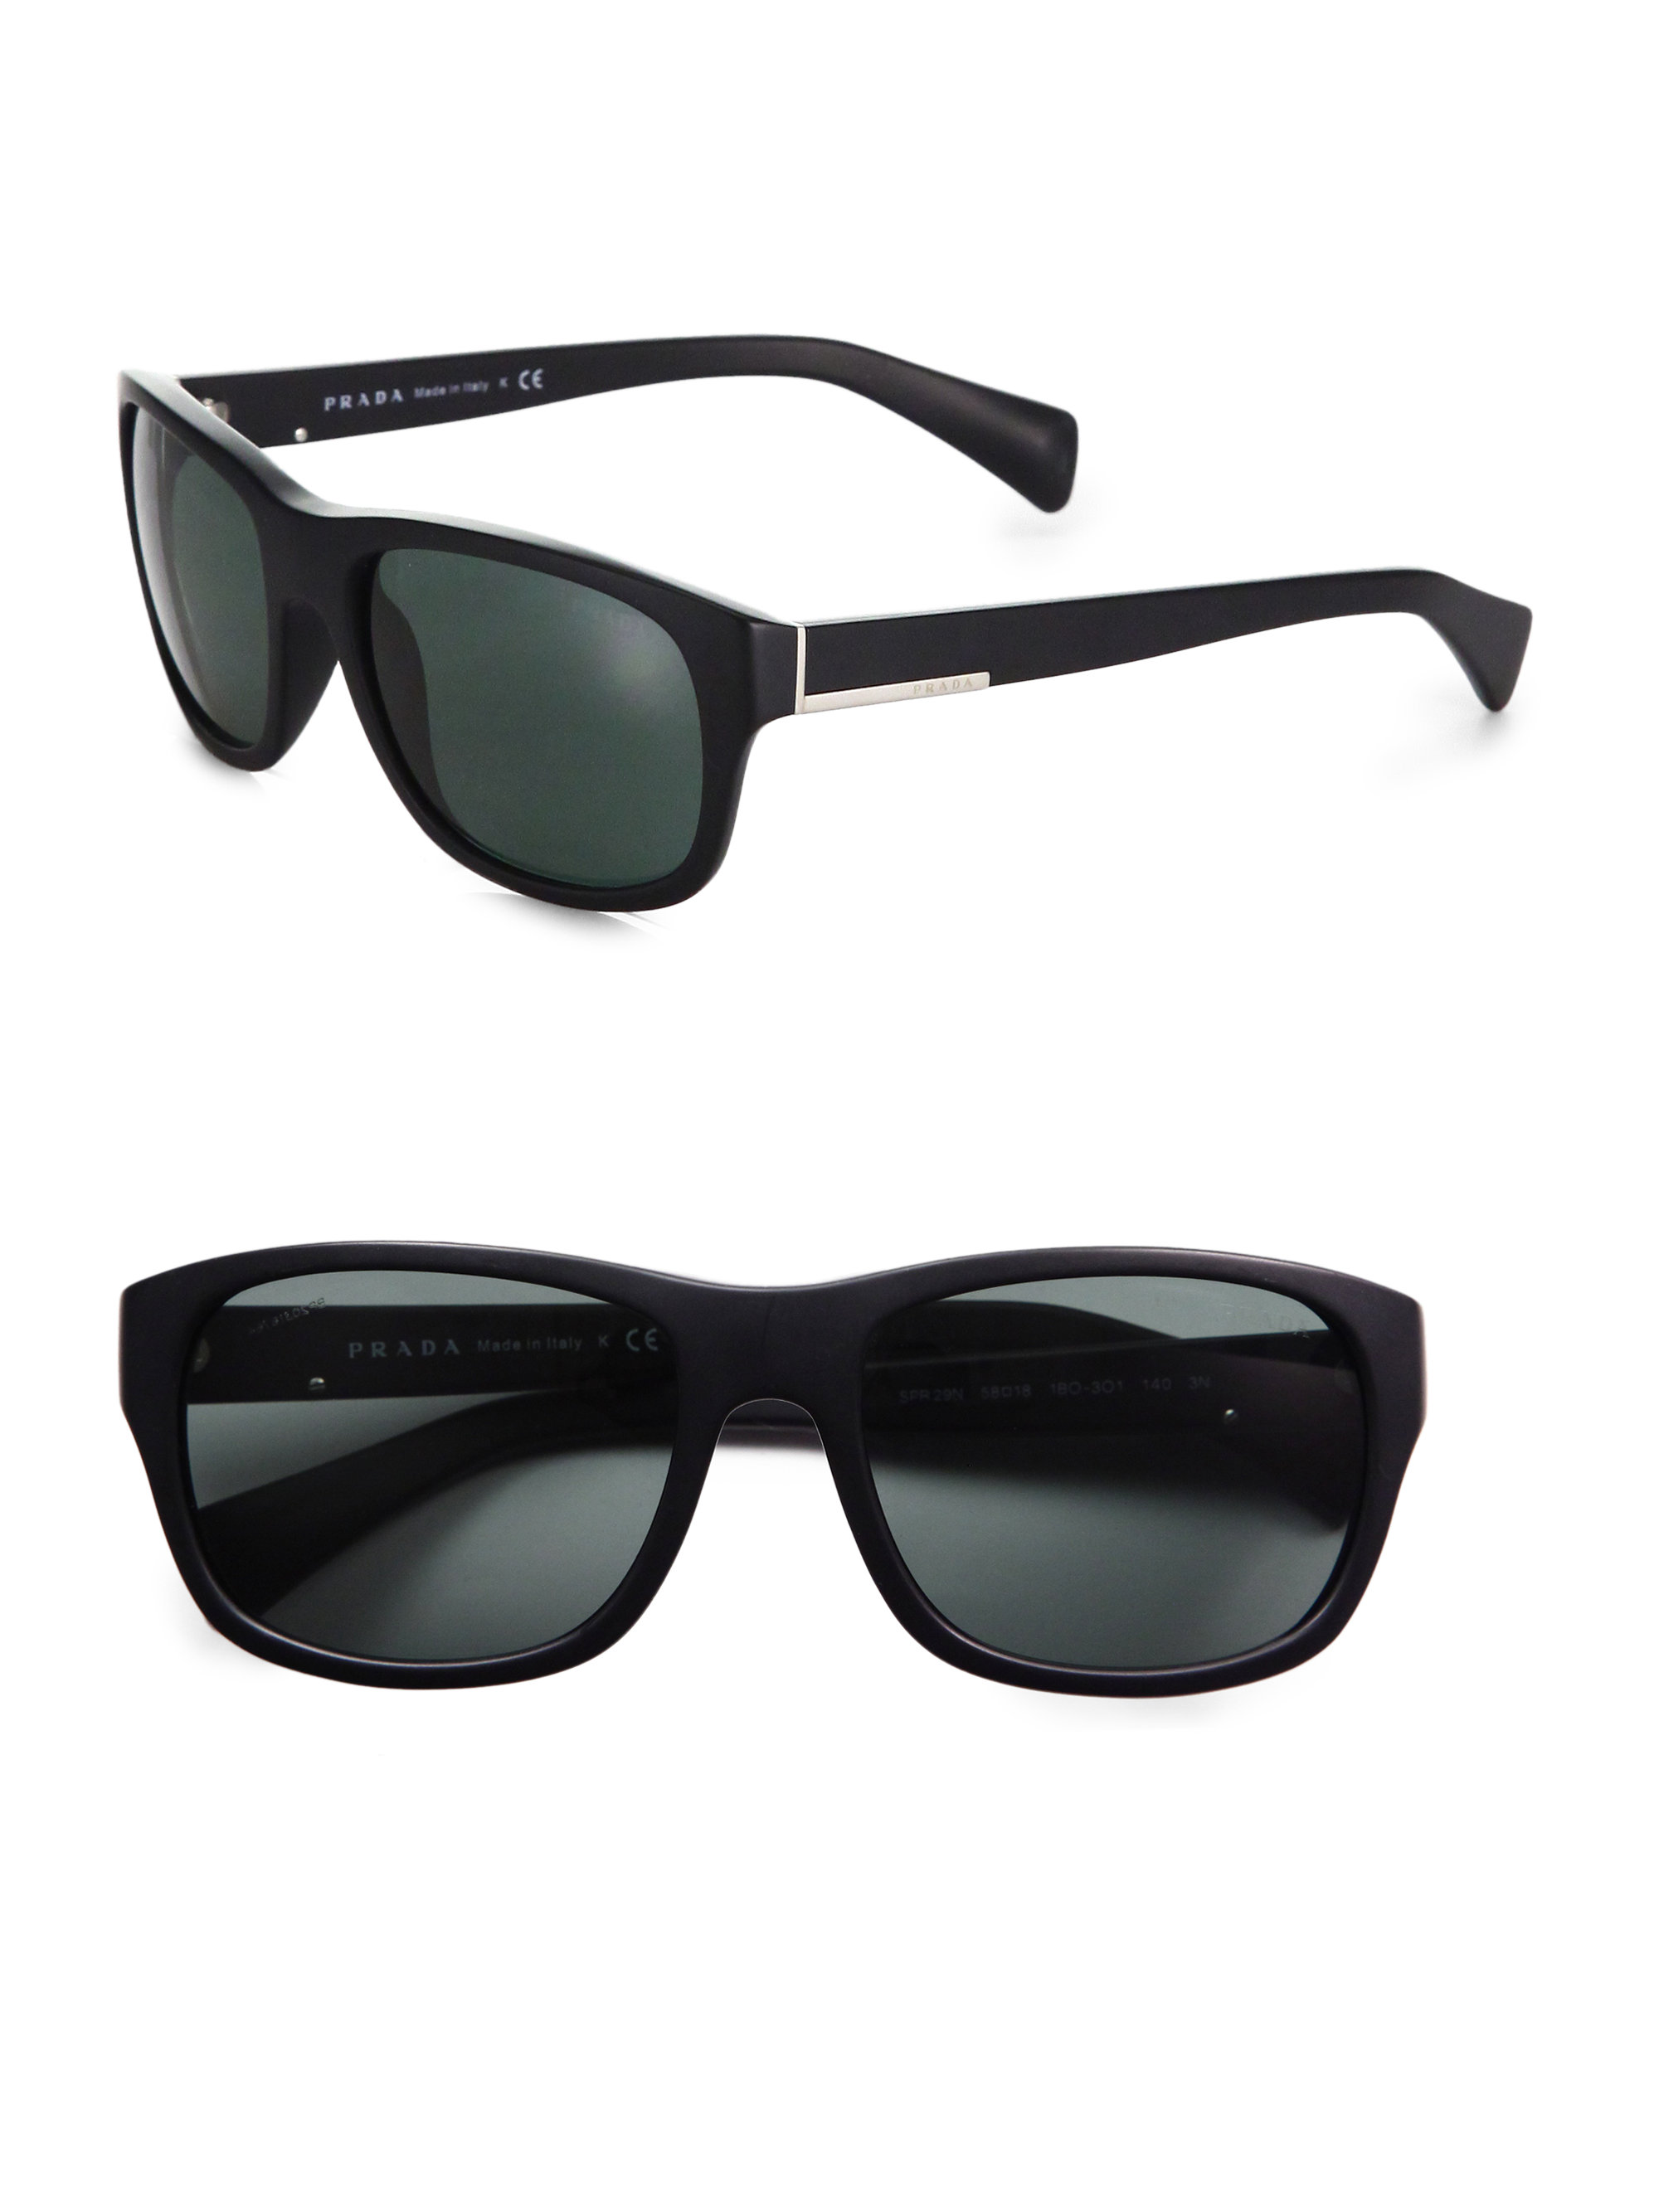 8c353da52762 ... uk lyst prada classic acetate sunglasses in black for men 06b32 7a219